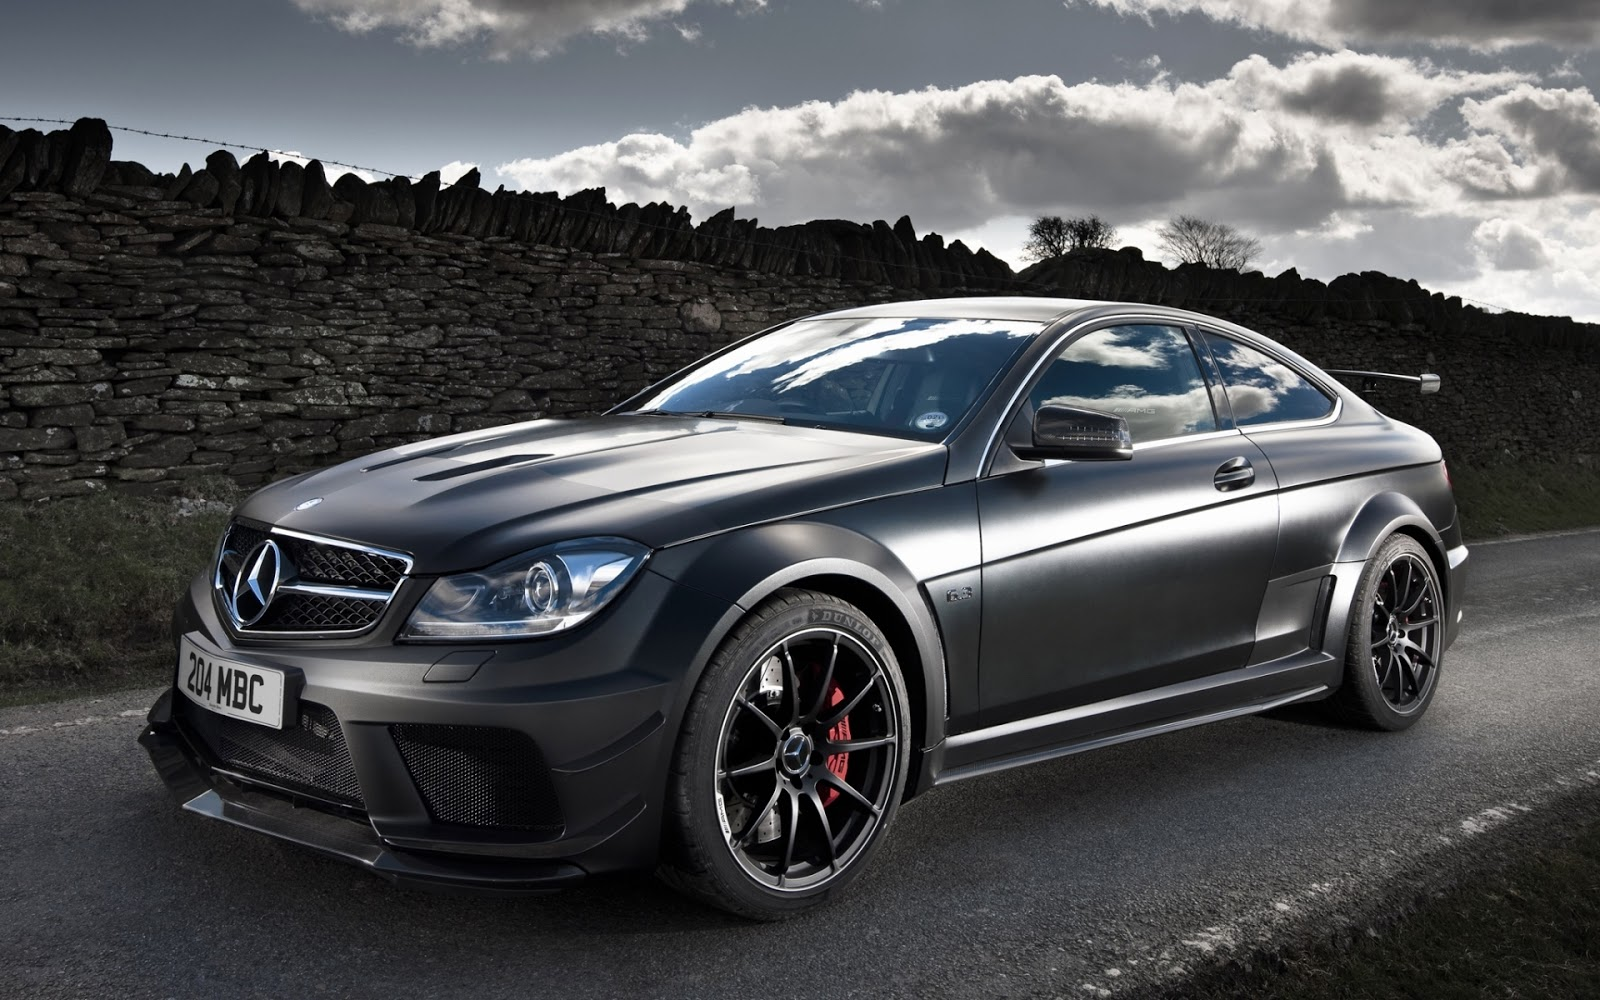 Mercedes Benz C63 HD Wallpapers 1600x1000